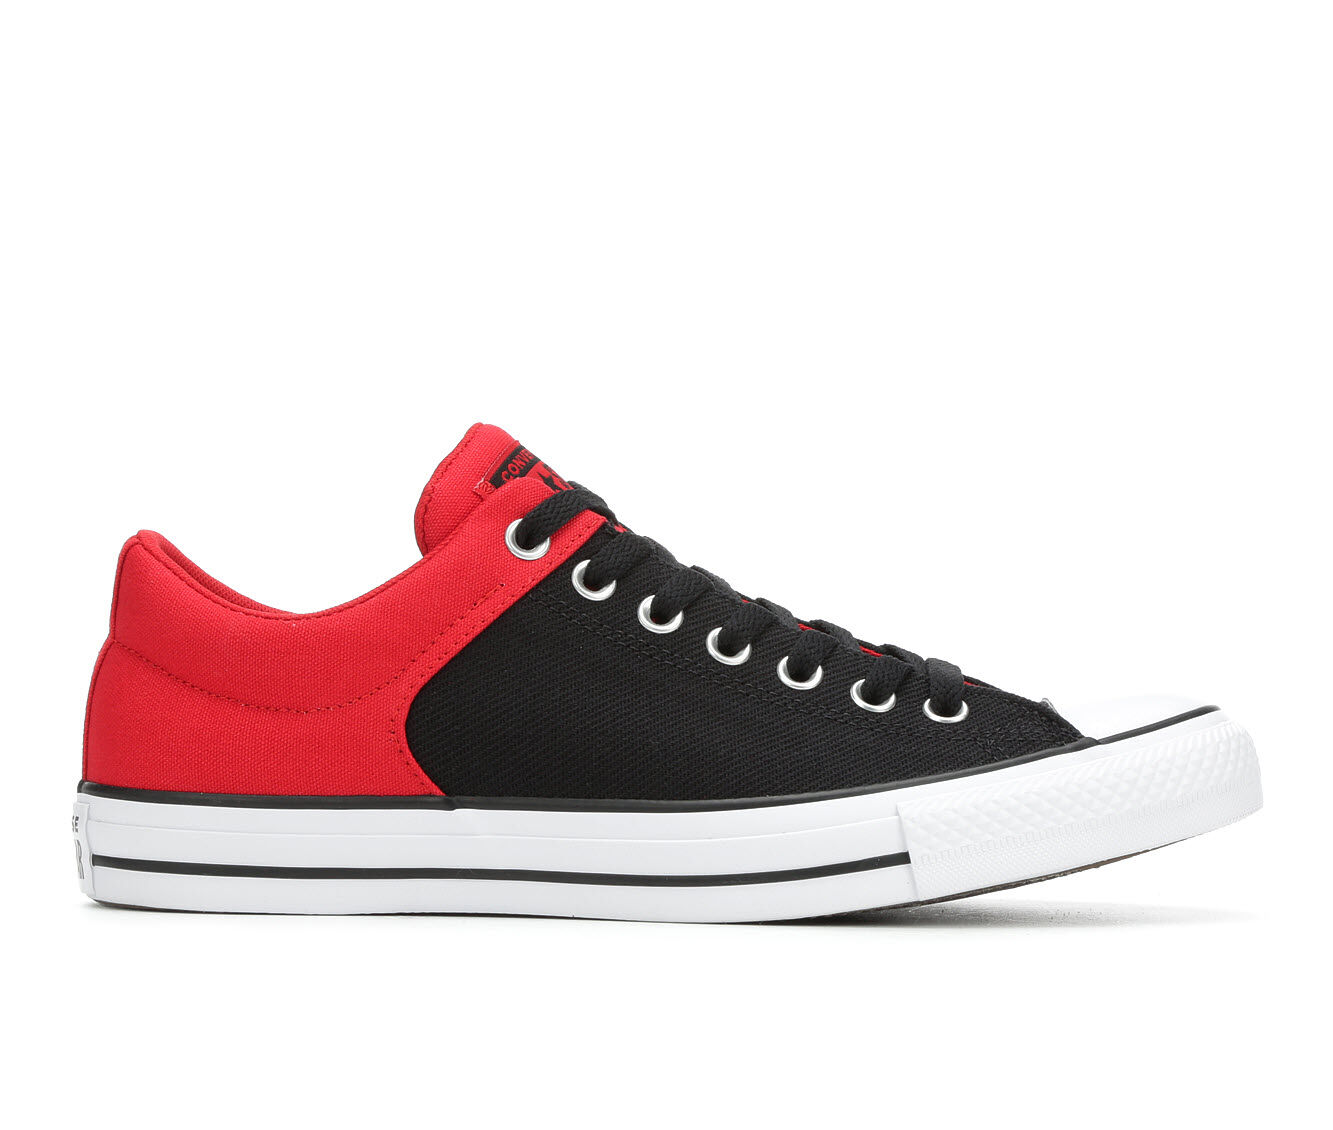 free shipping Men's Converse Ctas High St Ox Material Block Sneakers Red/Blk/Wht